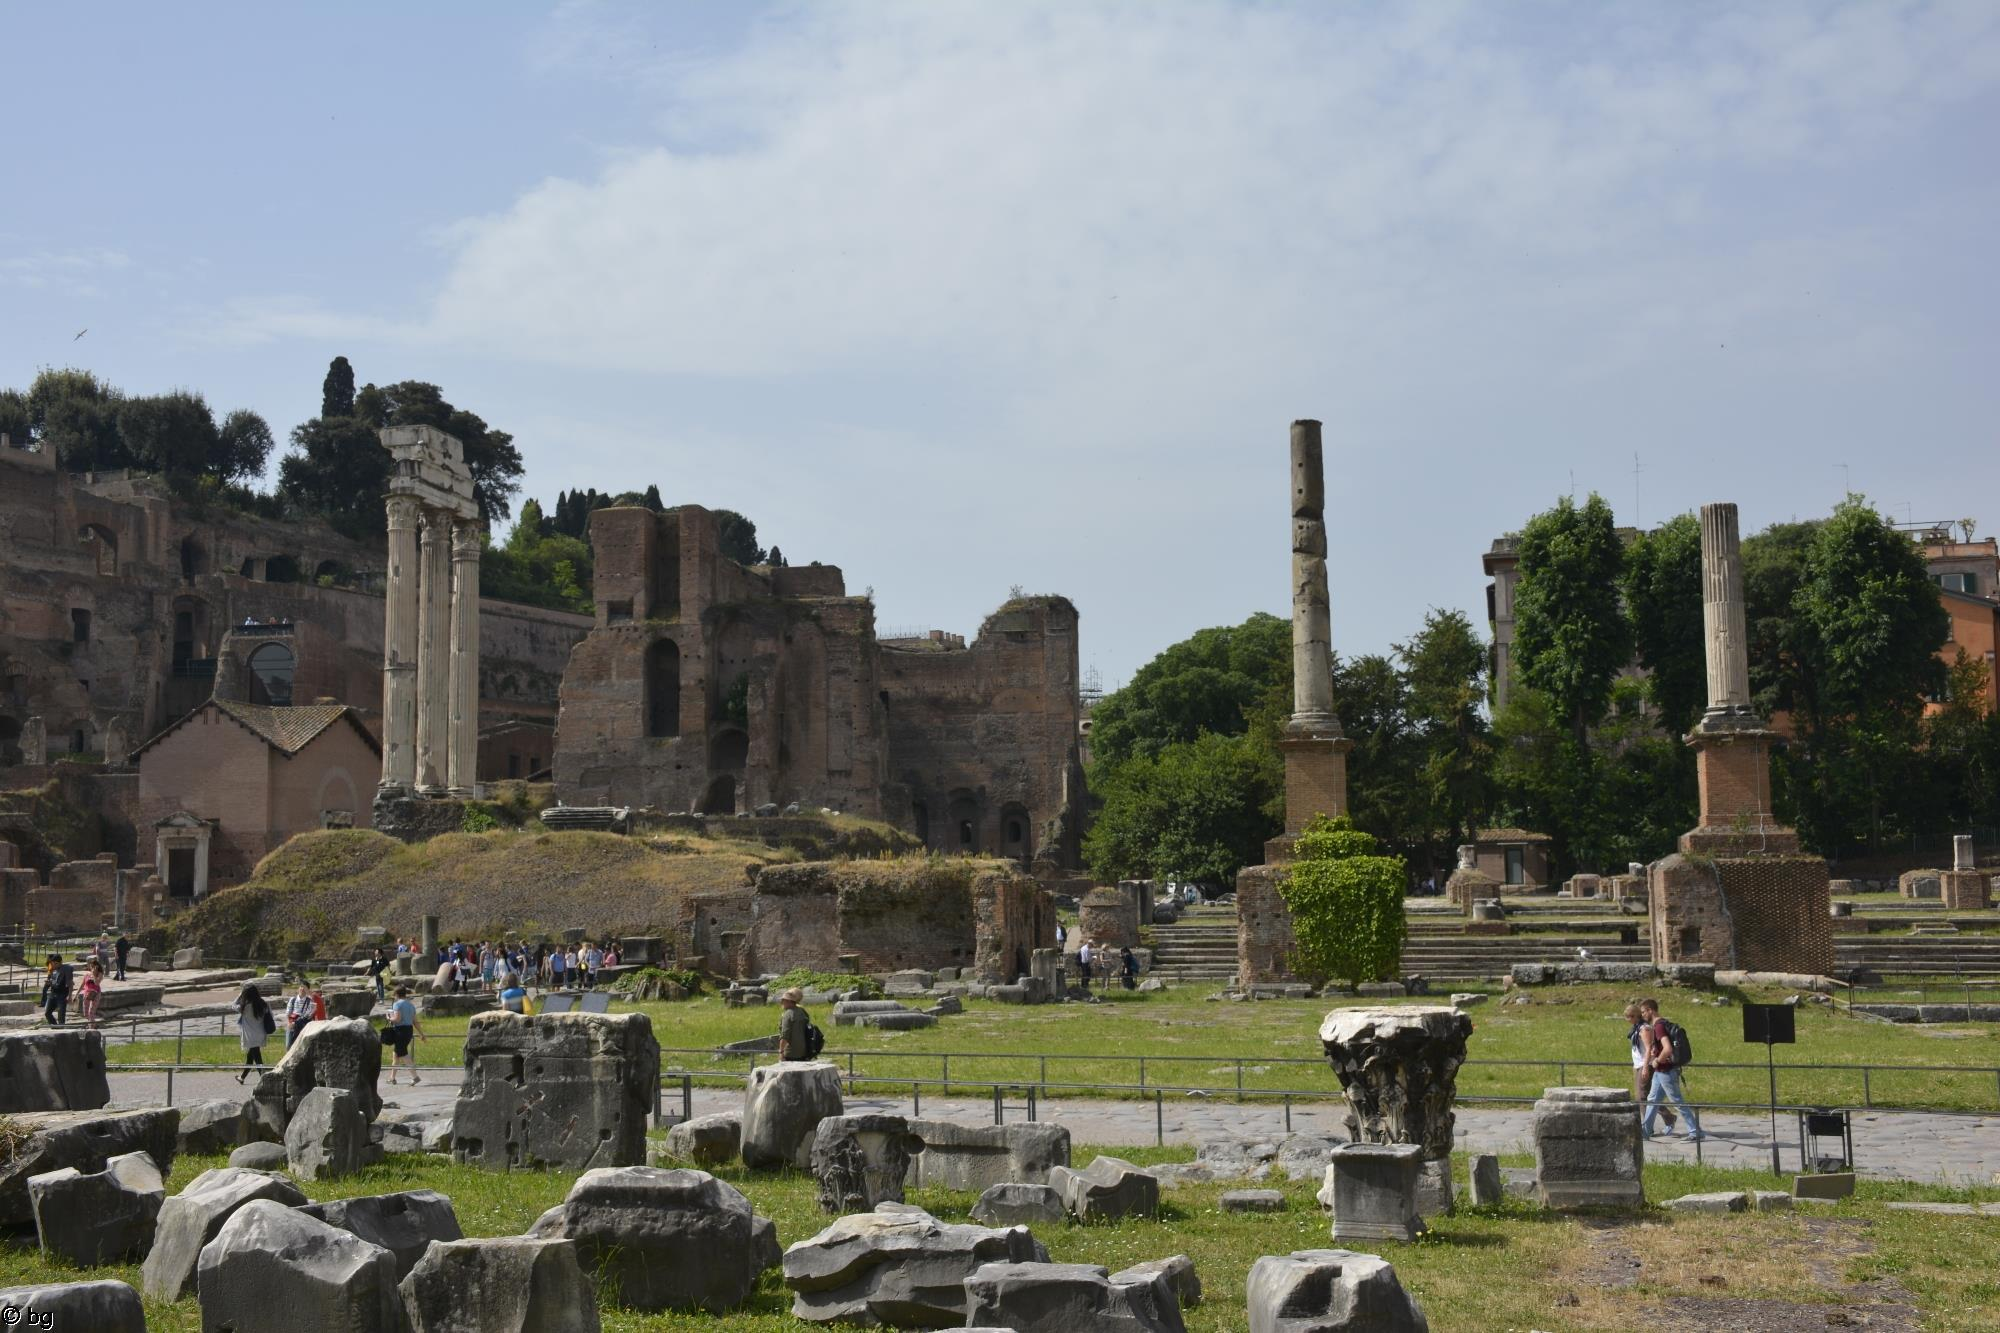 visiter-rome-photos-du-forum-romain_2